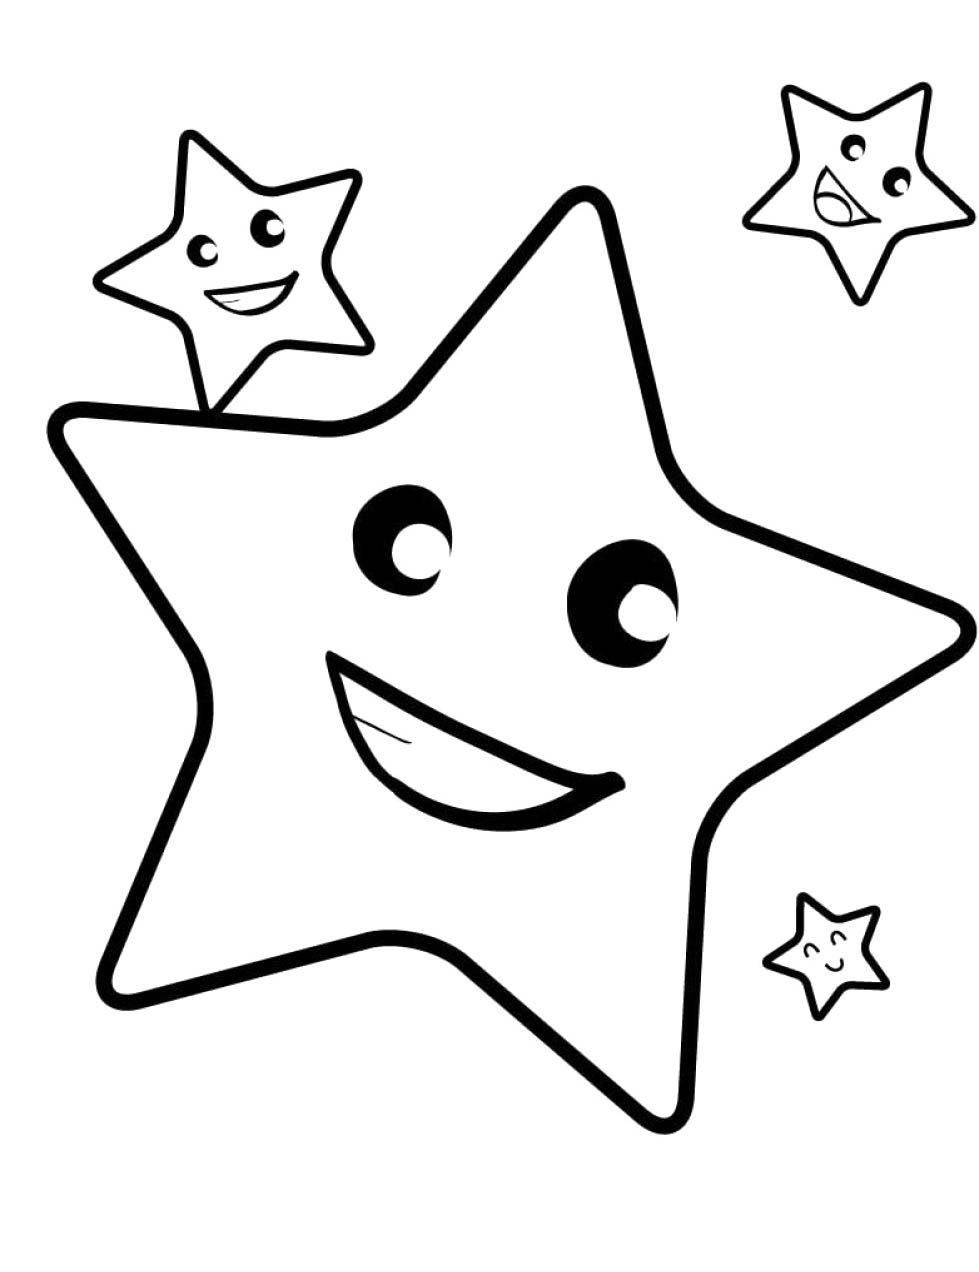 Pin By Mina Omid On Christmas Star Coloring Pages Coloring Pages Coloring Pages Inspirational